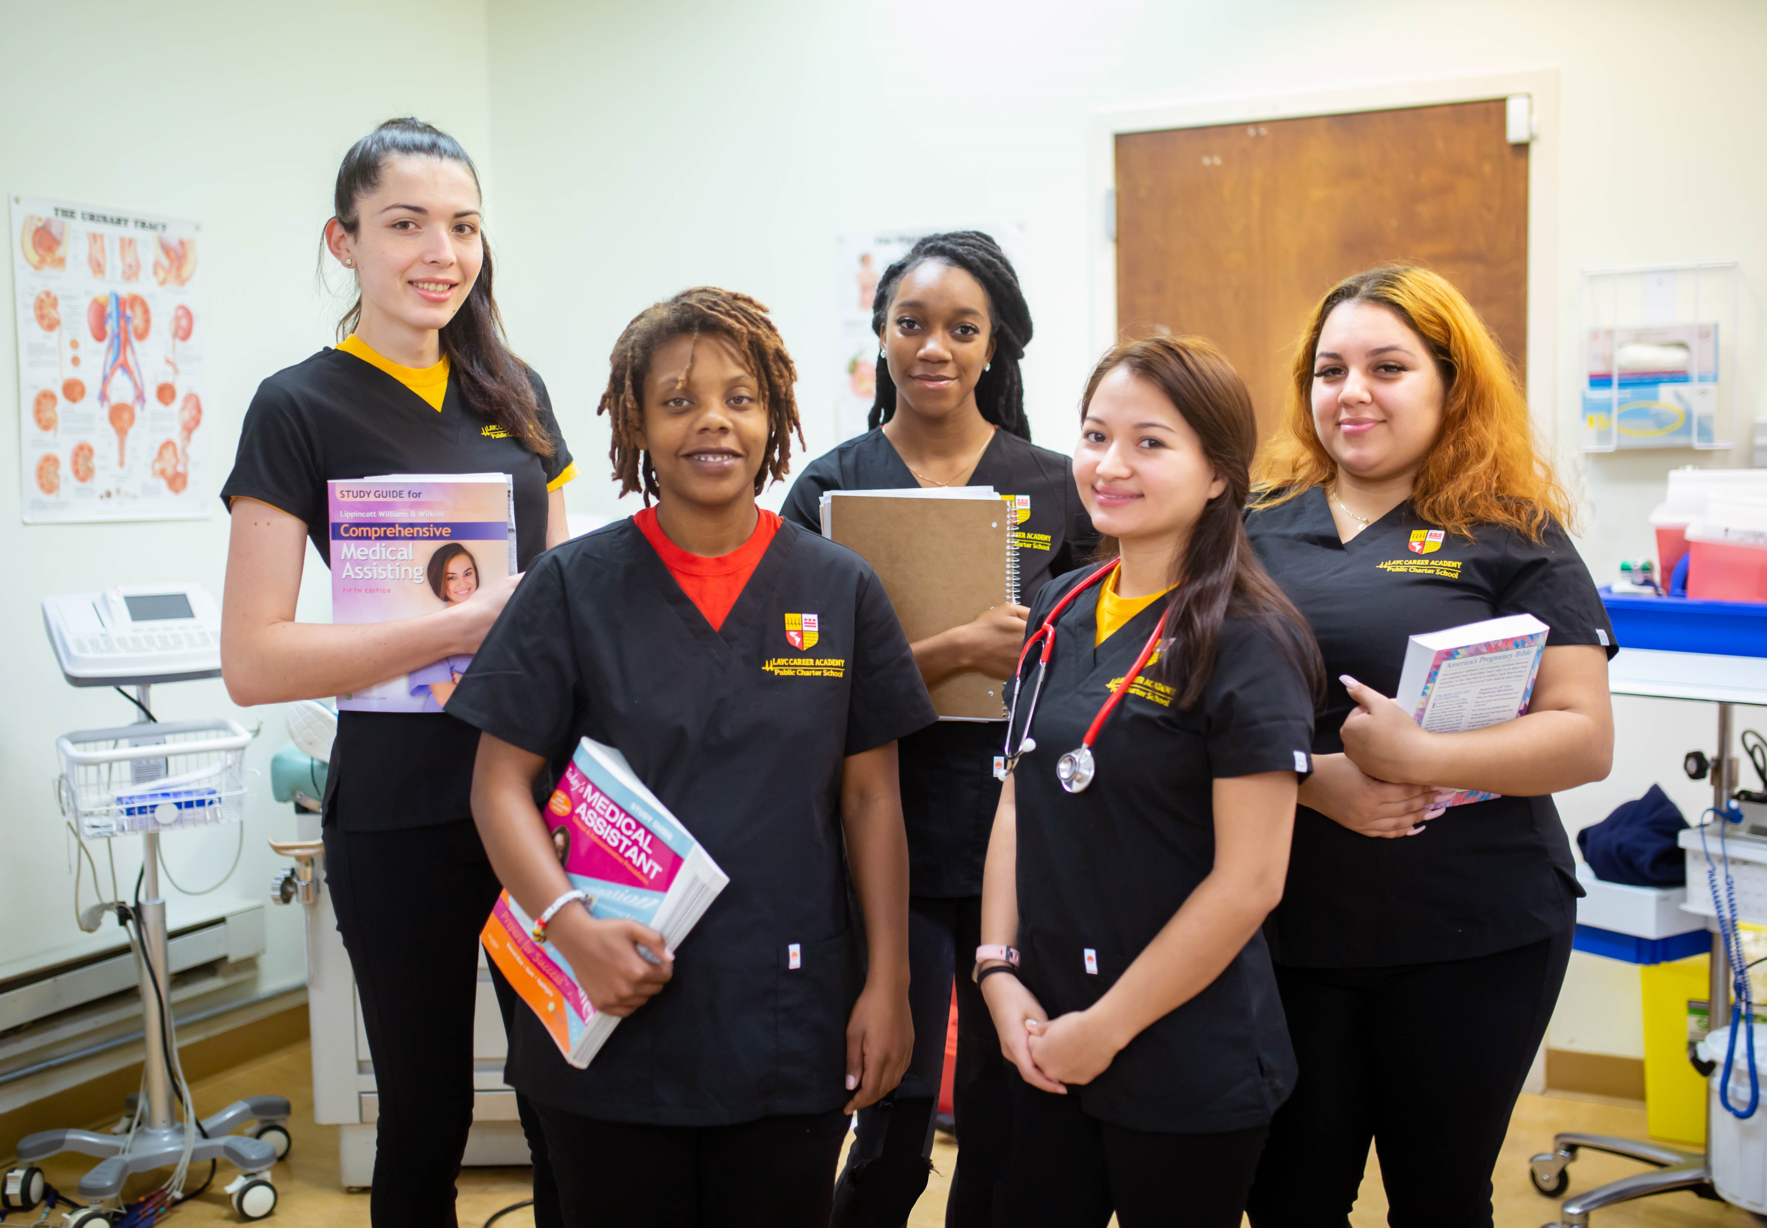 Donate now to help students gain the skills needed to succeed in college and employment. image